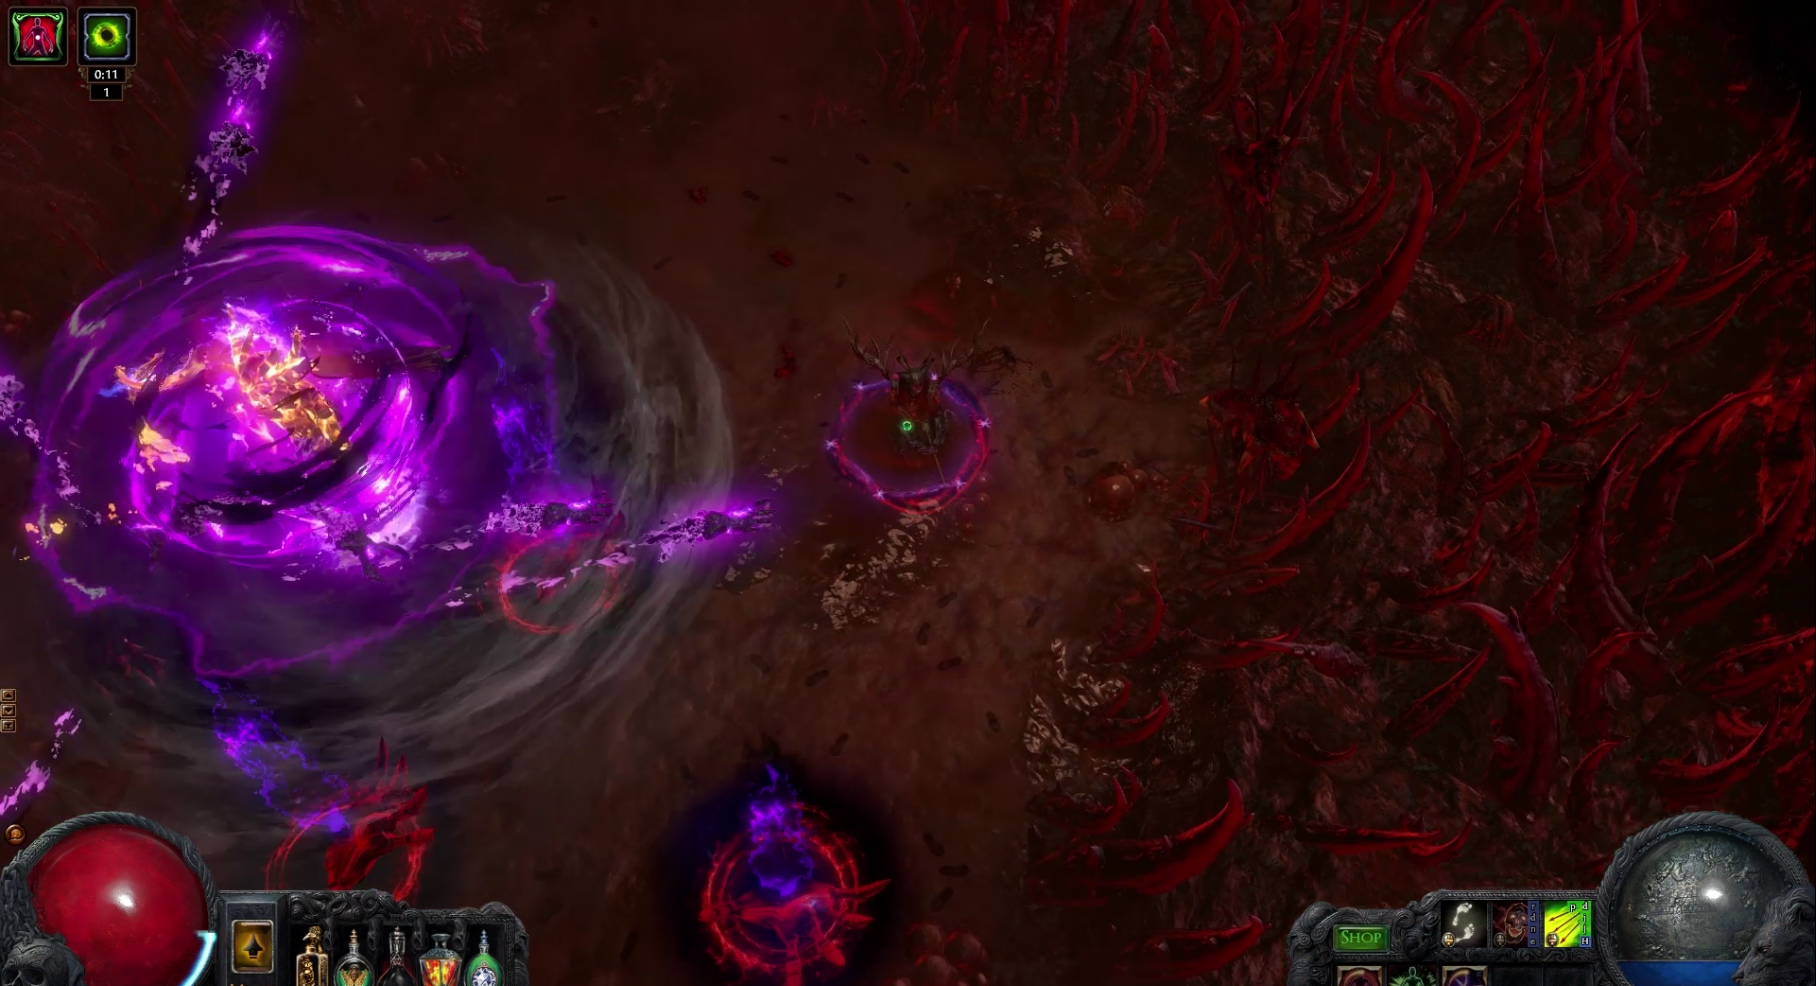 Breachlords boss fight screenshot from Path of Exile